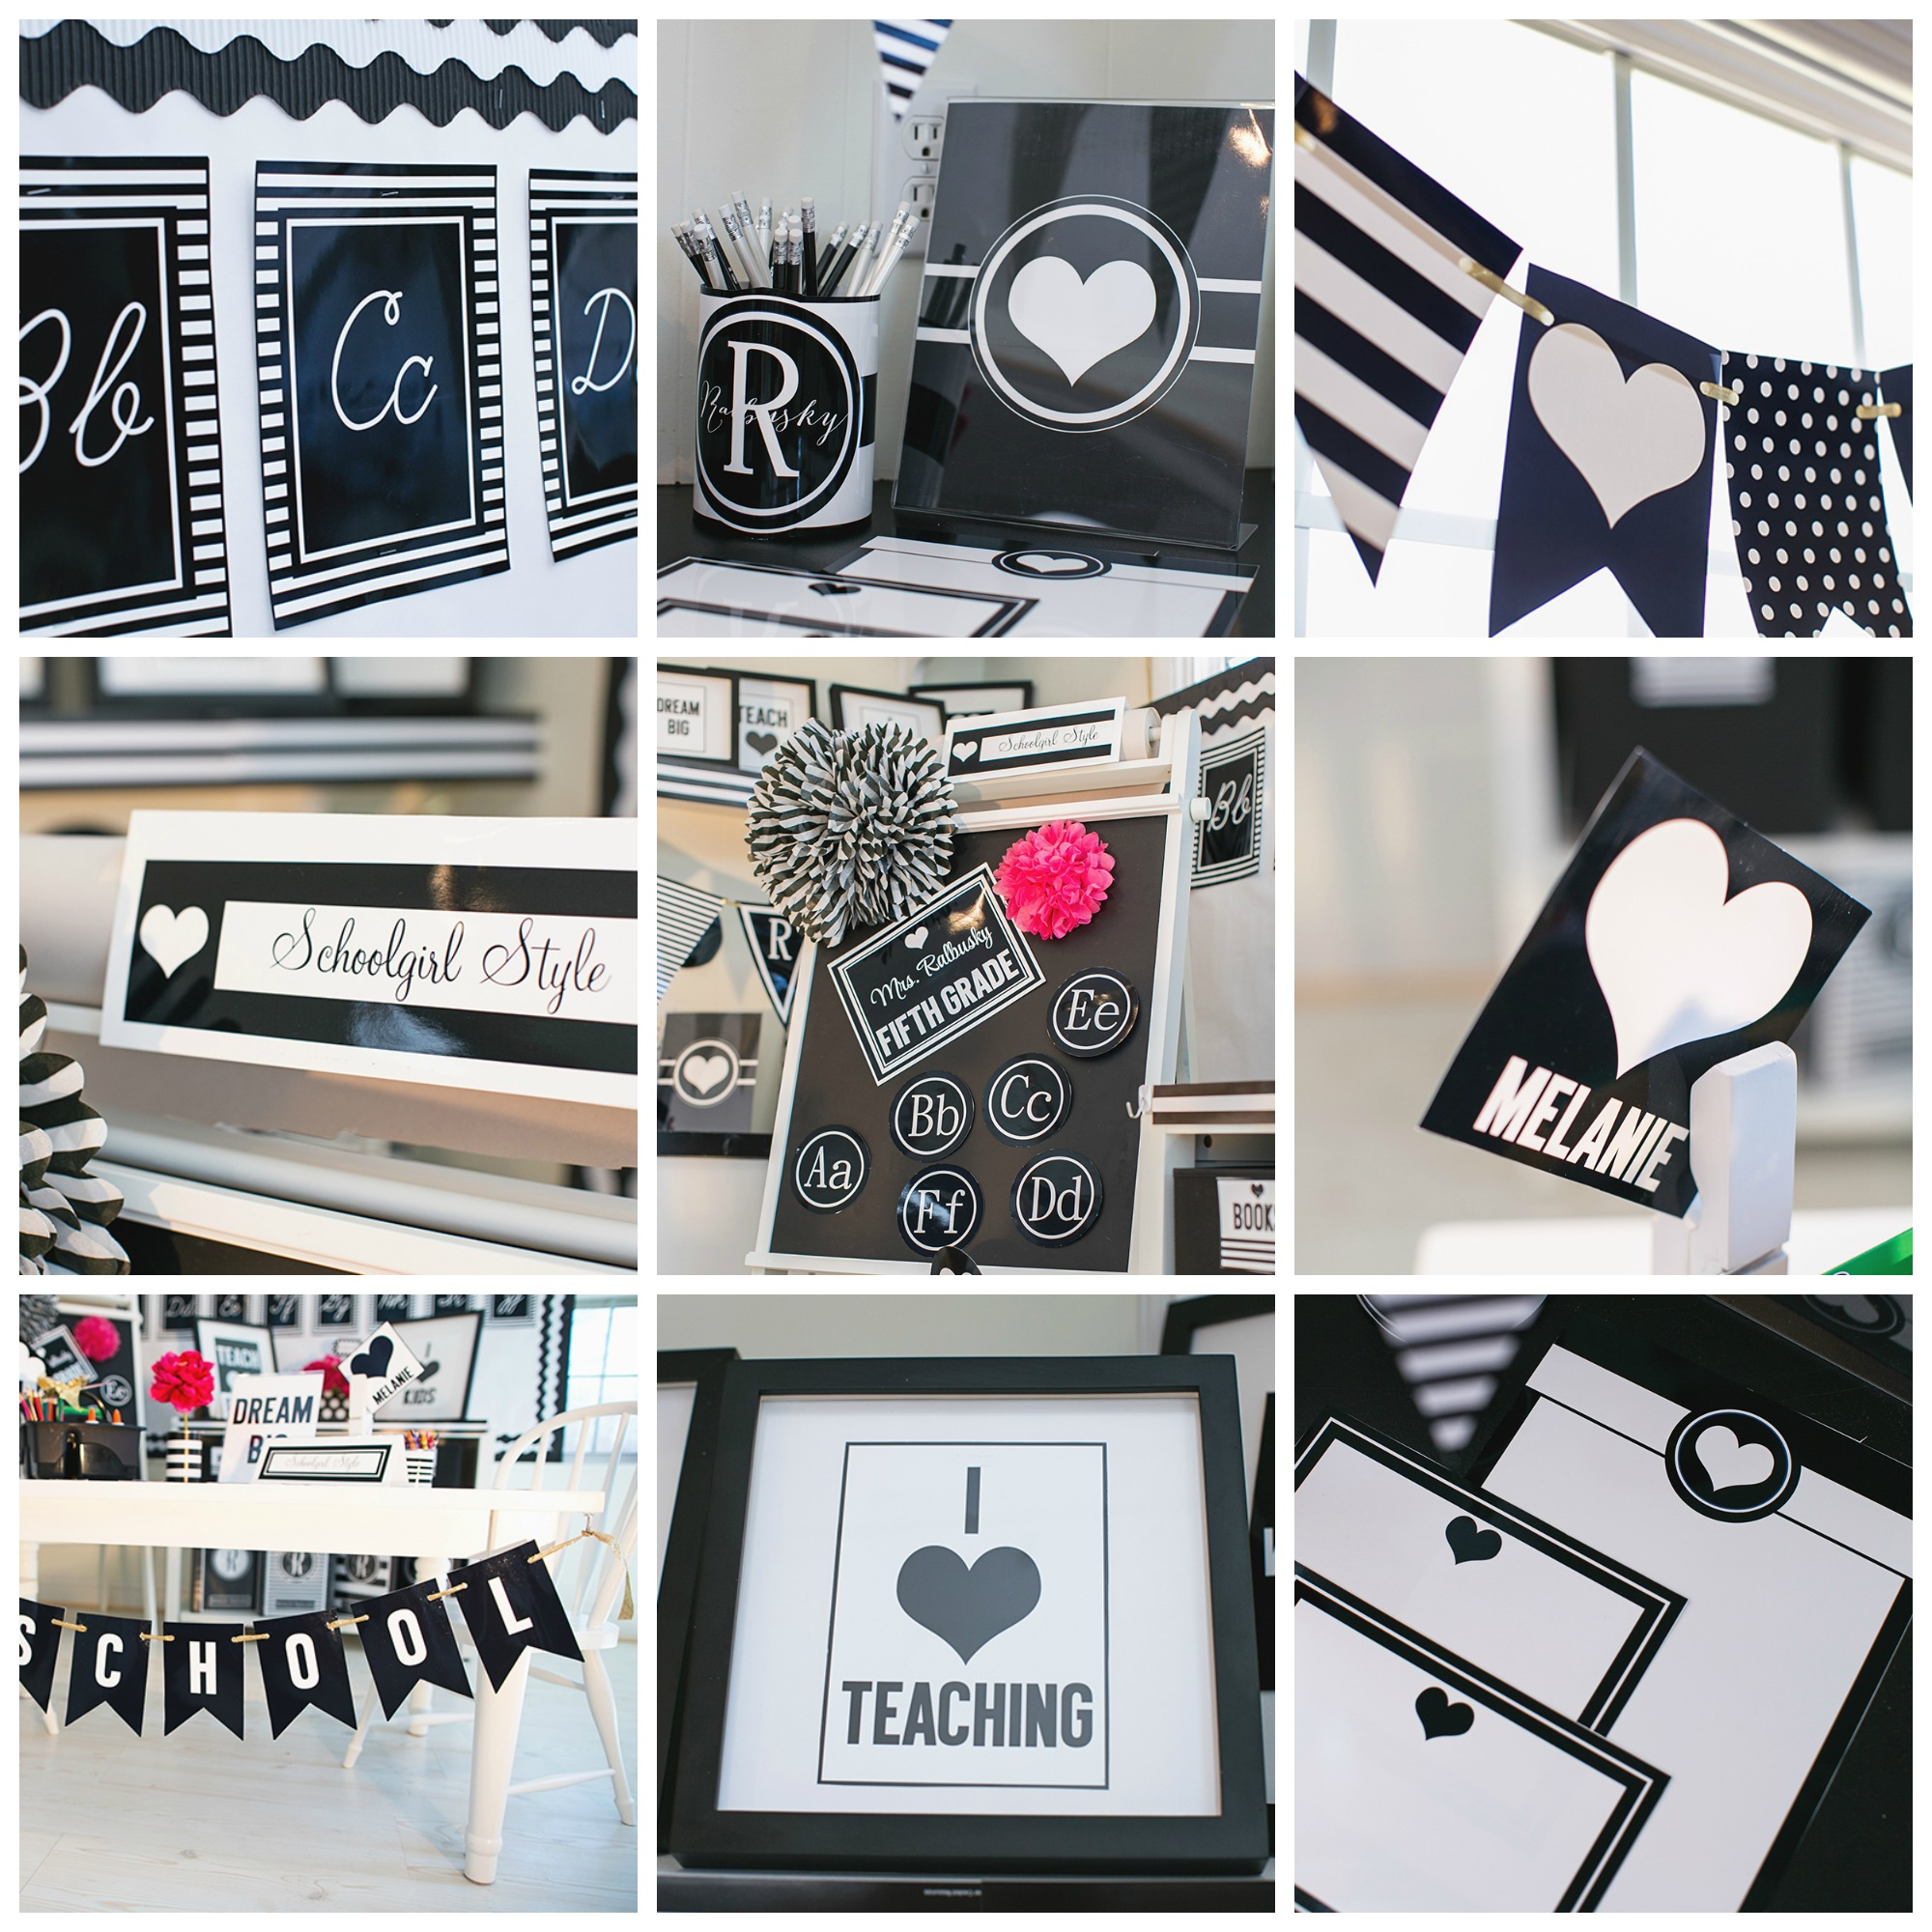 I HEART School Inspiration Boards